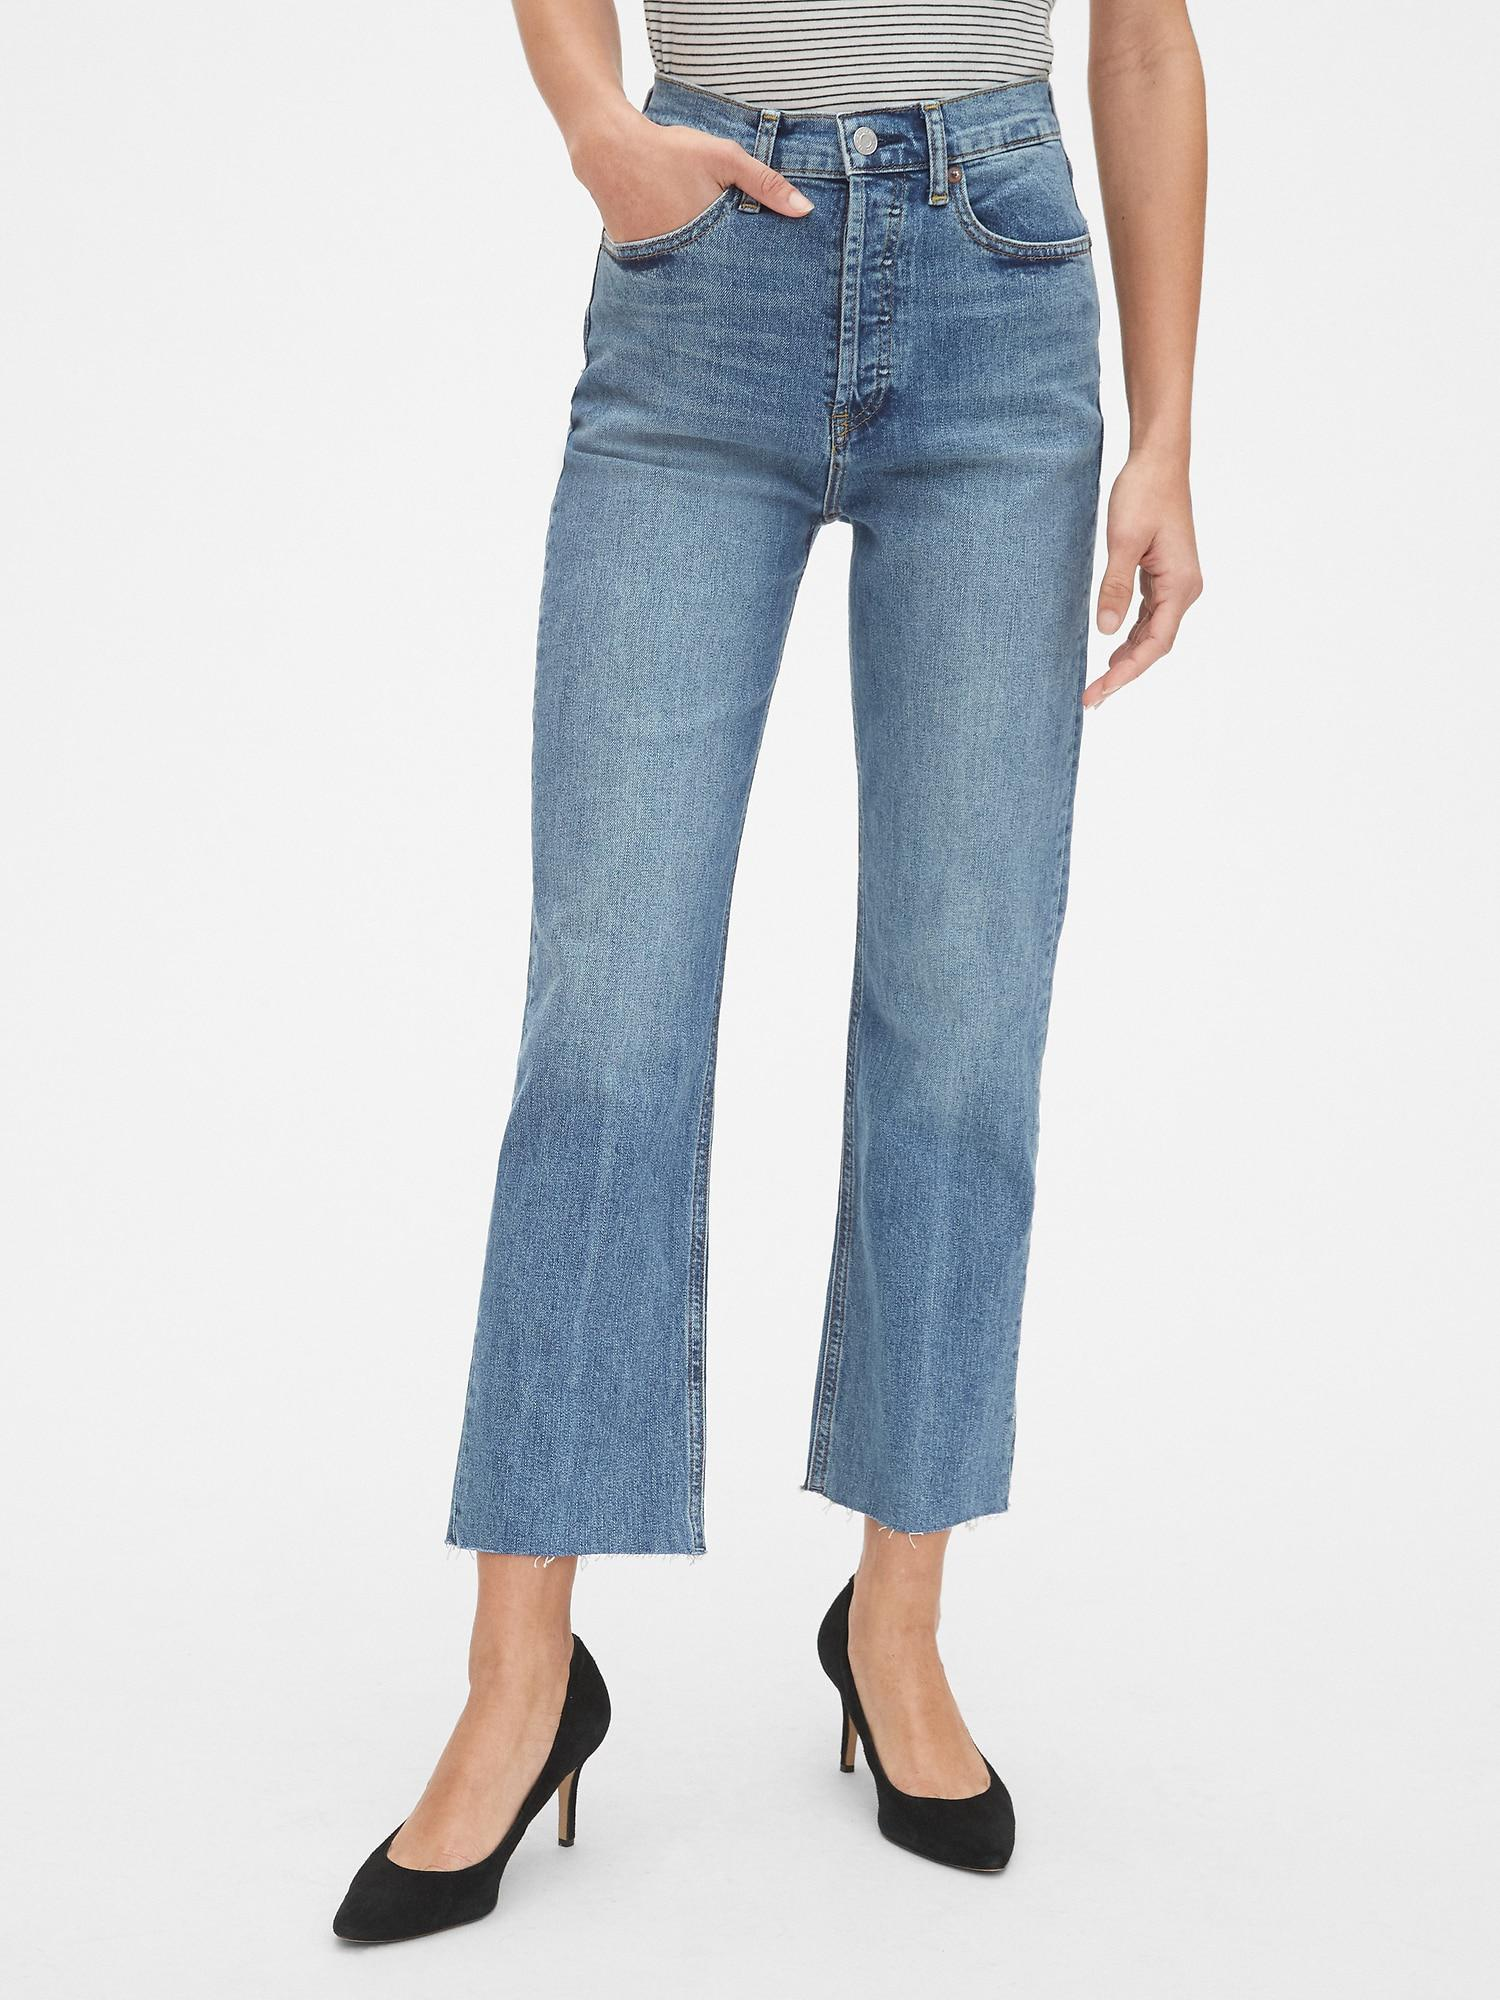 Lyst - Gap High Rise Cheeky Straight Jeans in Blue